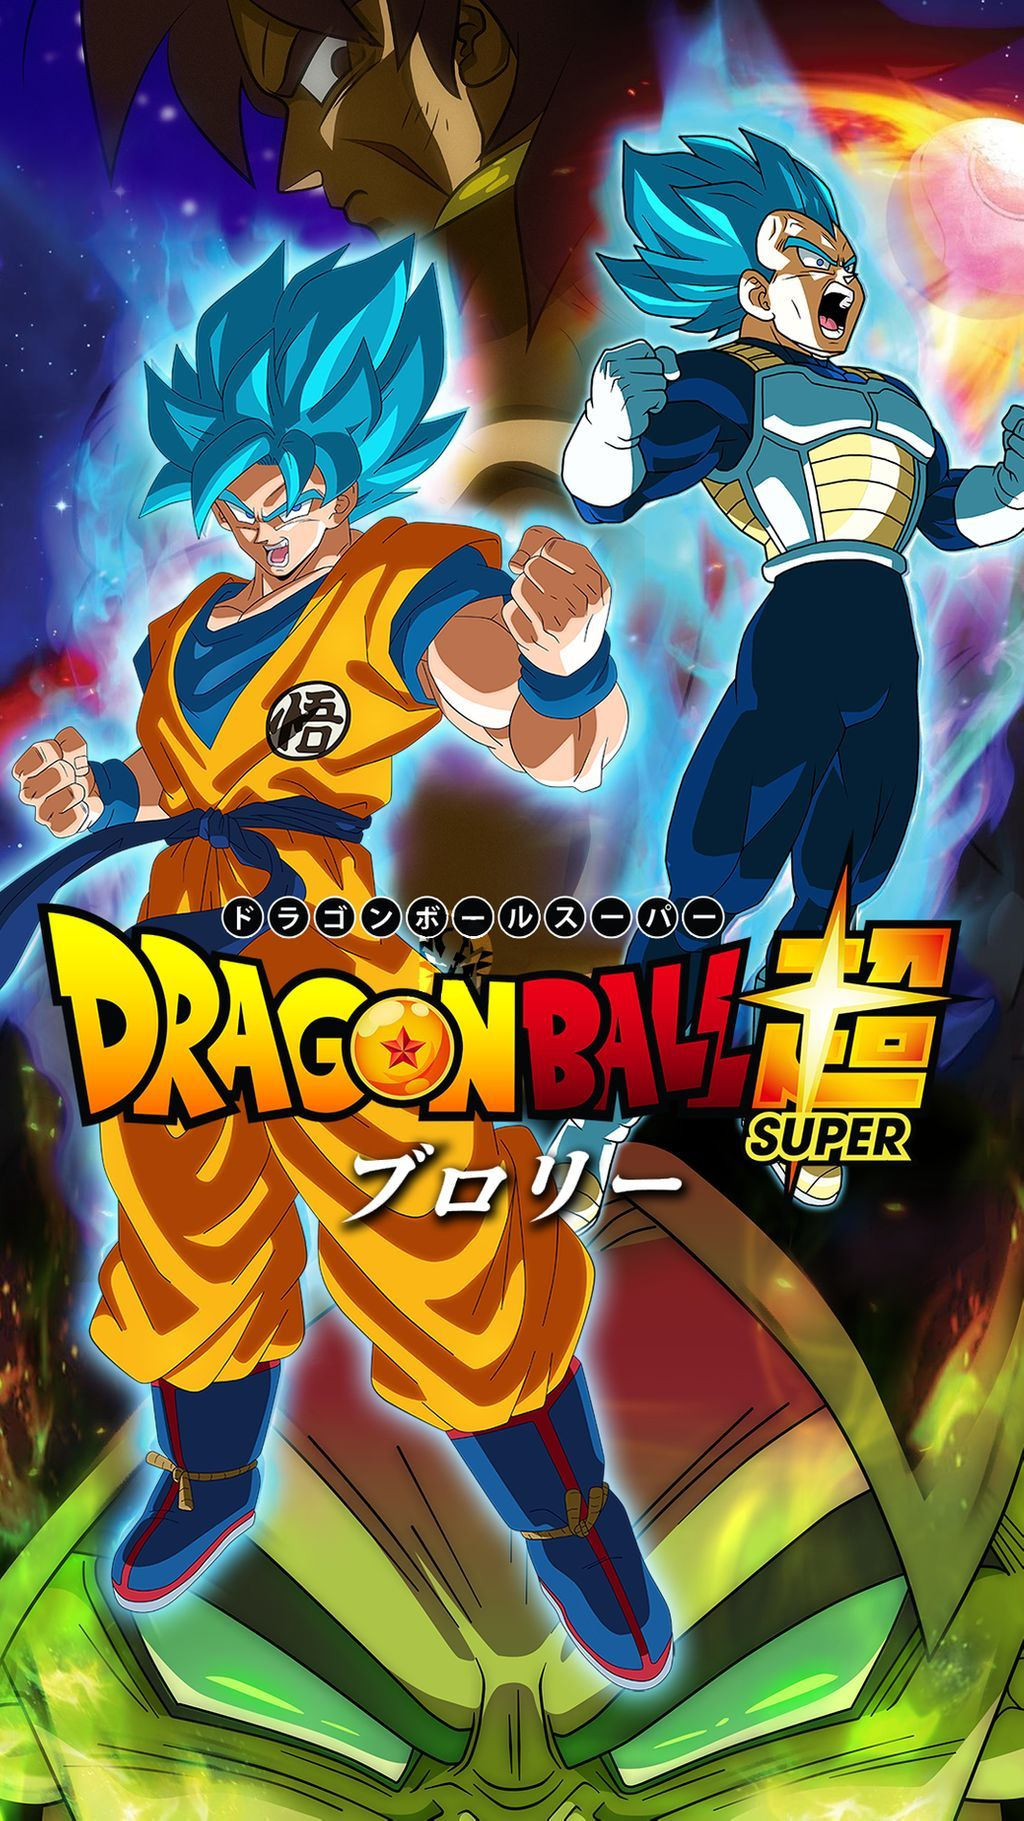 Dragon Ball Super Wallpaper Mobile Hd Dragon Ball Super Broly Hd Mobile Wallpaper By D In 2020 Dragon Ball Super Wallpapers Dragon Ball Super Dragon Ball Super Manga